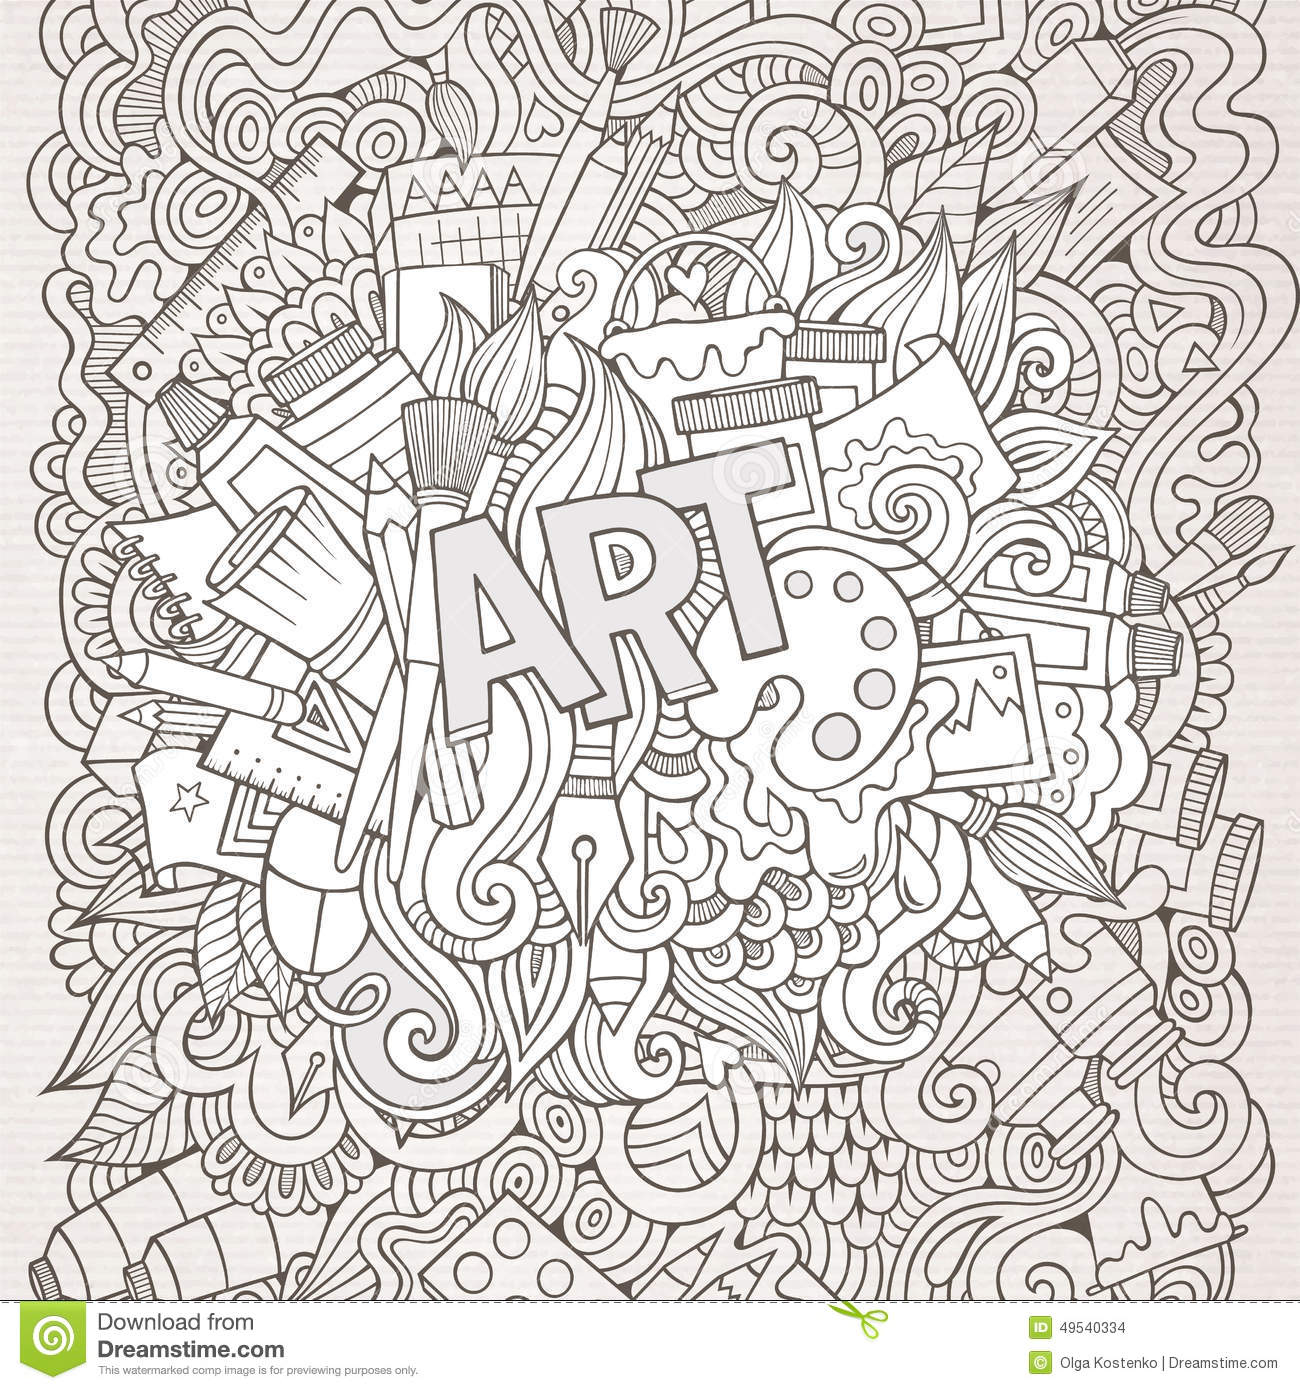 Art hand lettering and doodles elements background stock Coloring book background